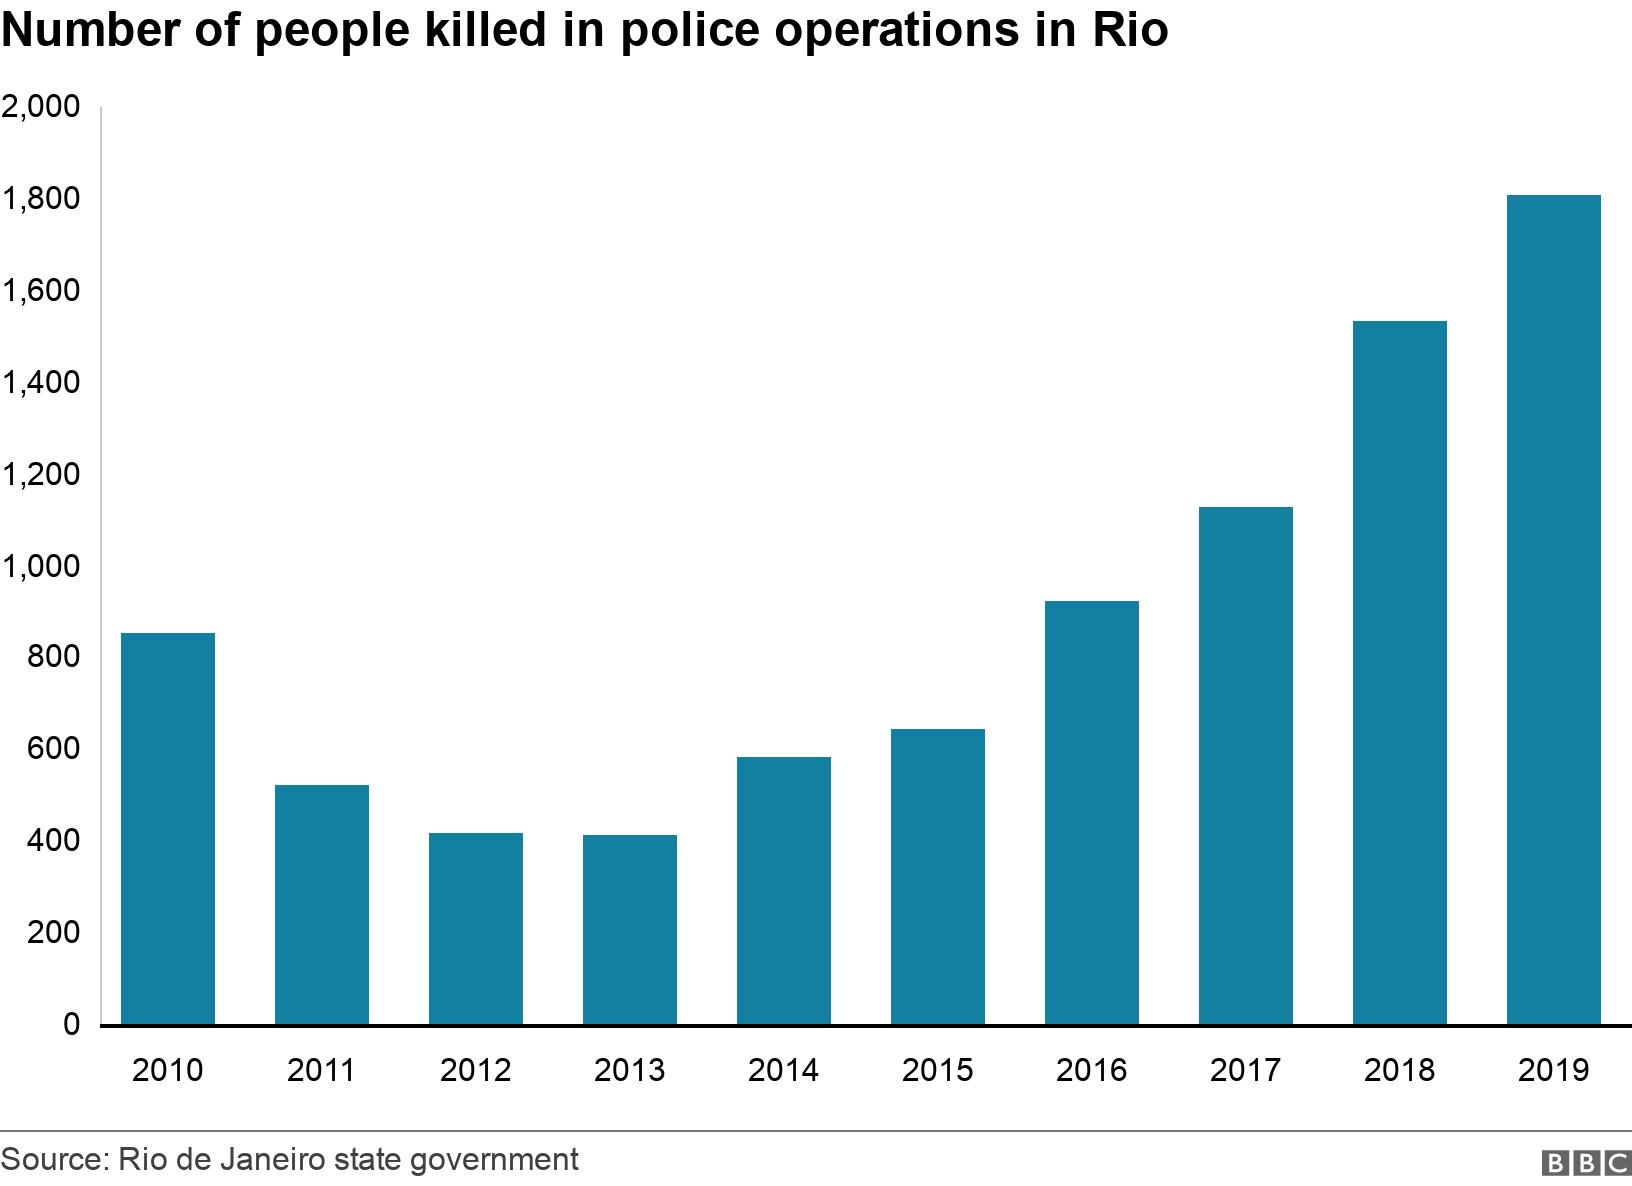 Number of people killed in police operations in Rio. . Graphic showing the number of people killed in police operations in Rio .